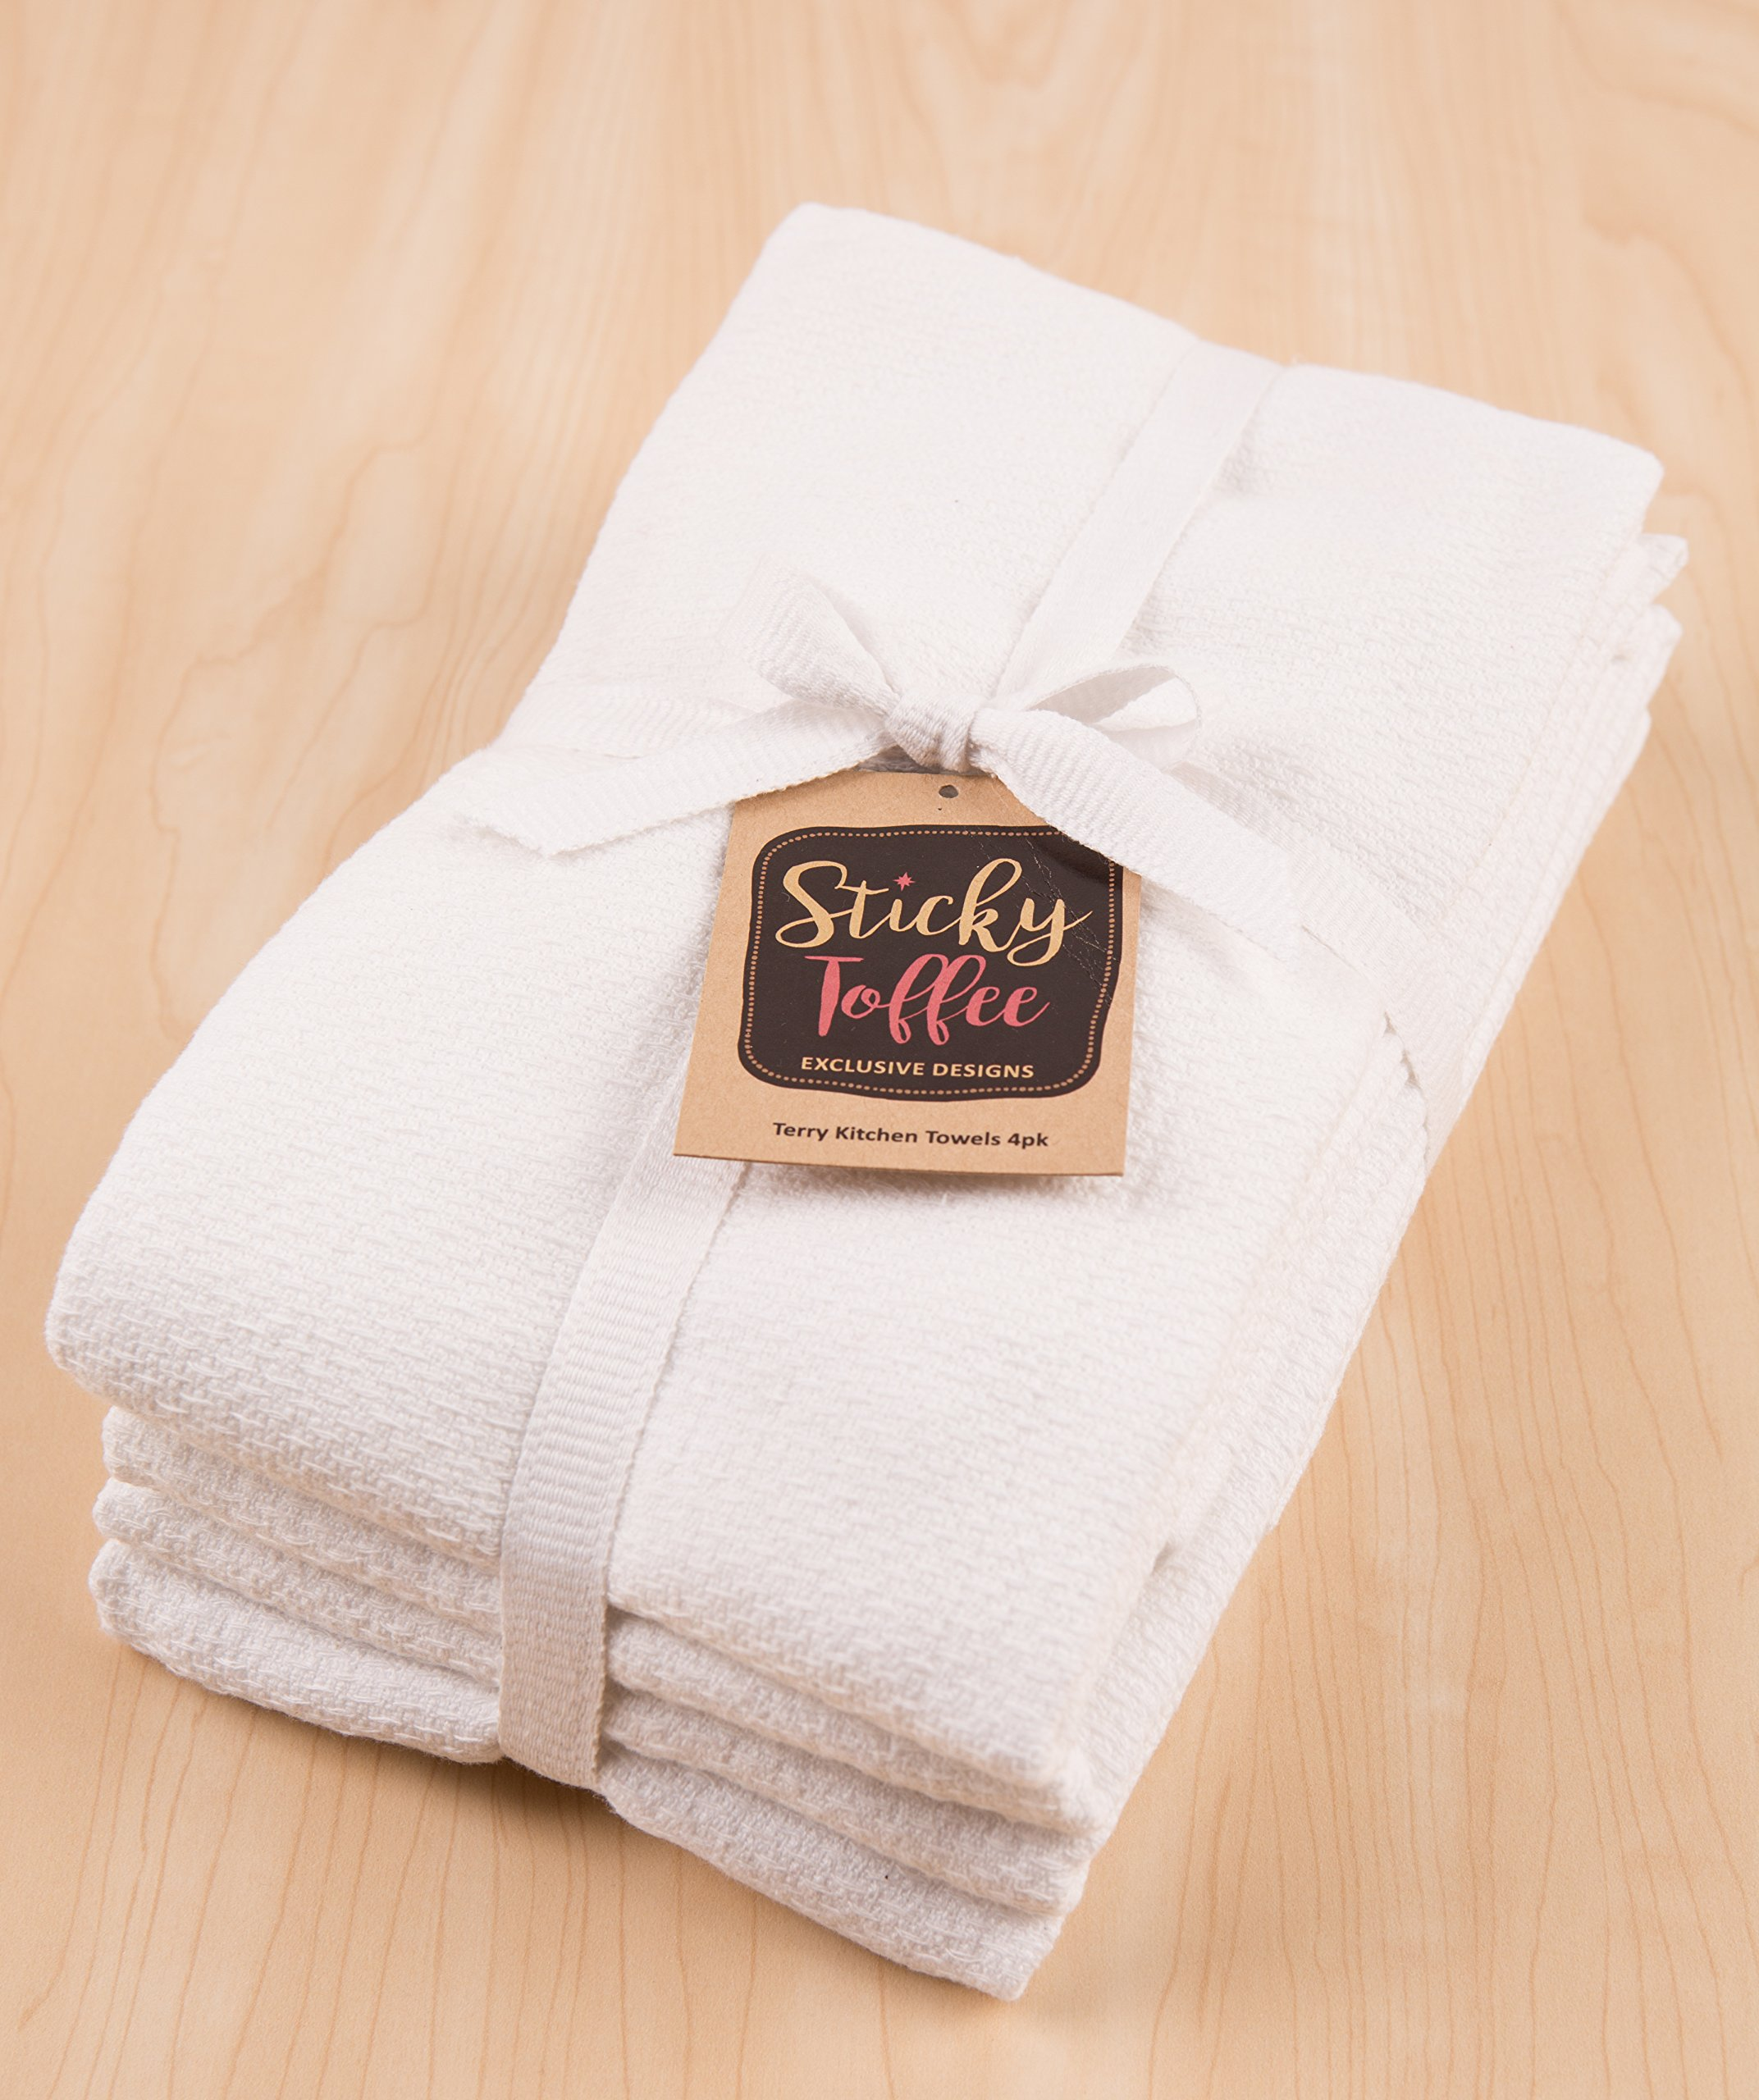 Sticky Toffee Cotton Terry Kitchen Dish Towel, 4 Pack, White, 28 in x 14 in by Sticky Toffee (Image #7)